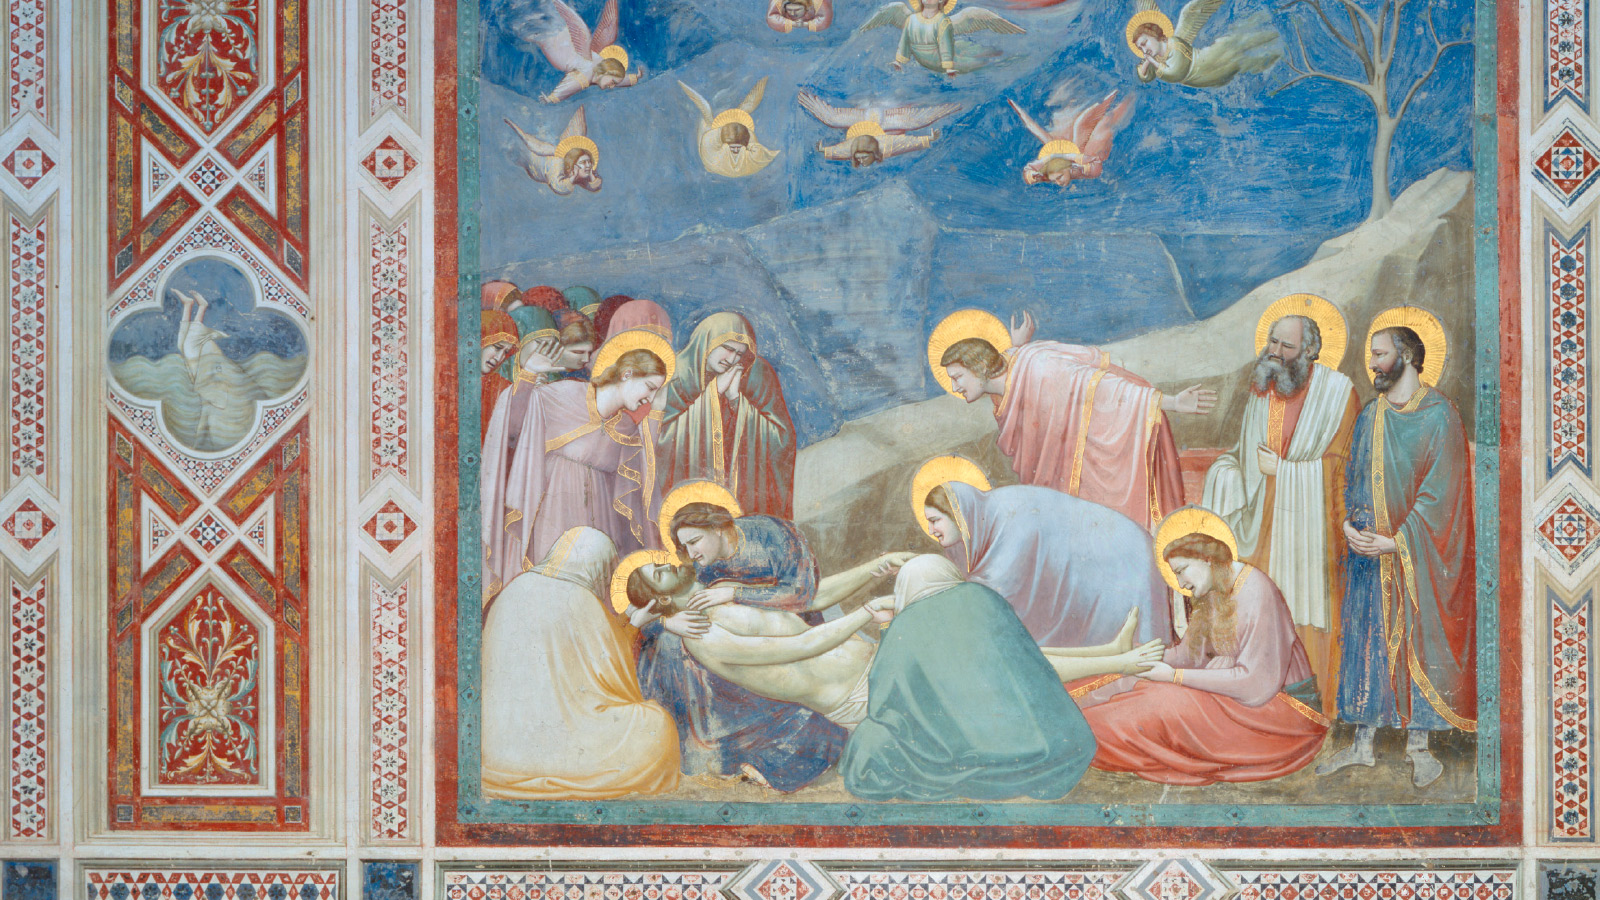 Giotto's Lamentation (1305-1306)